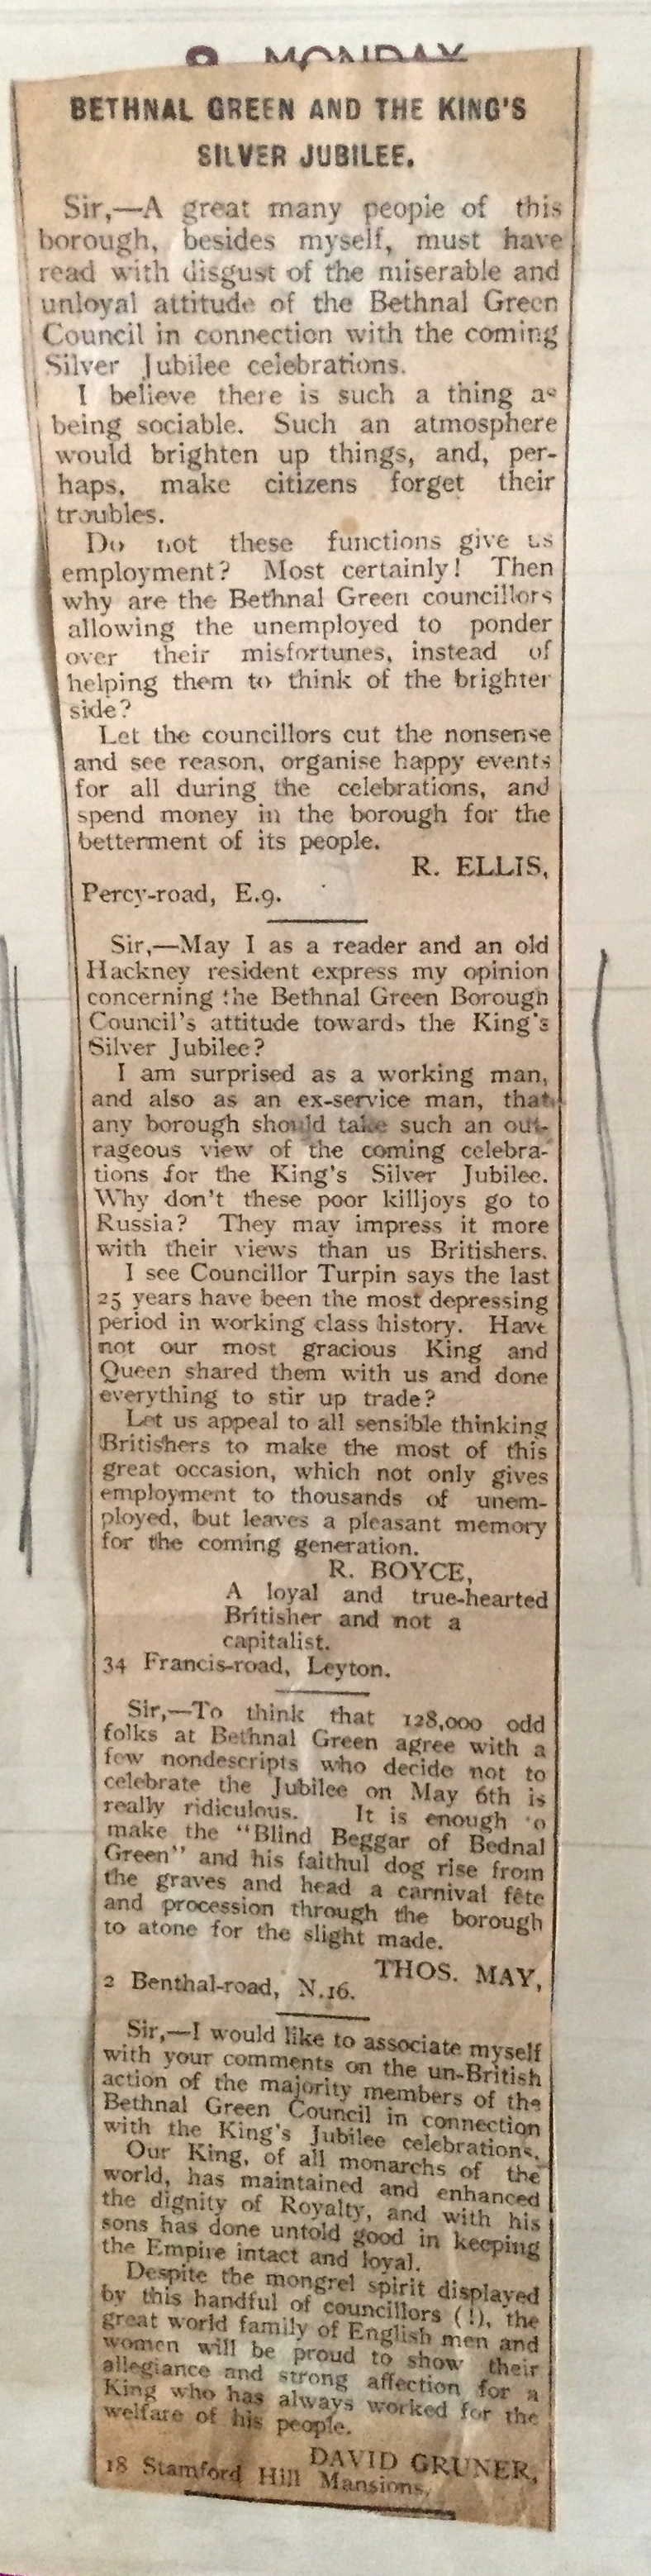 Newspaper letter re. Silver Jubillee